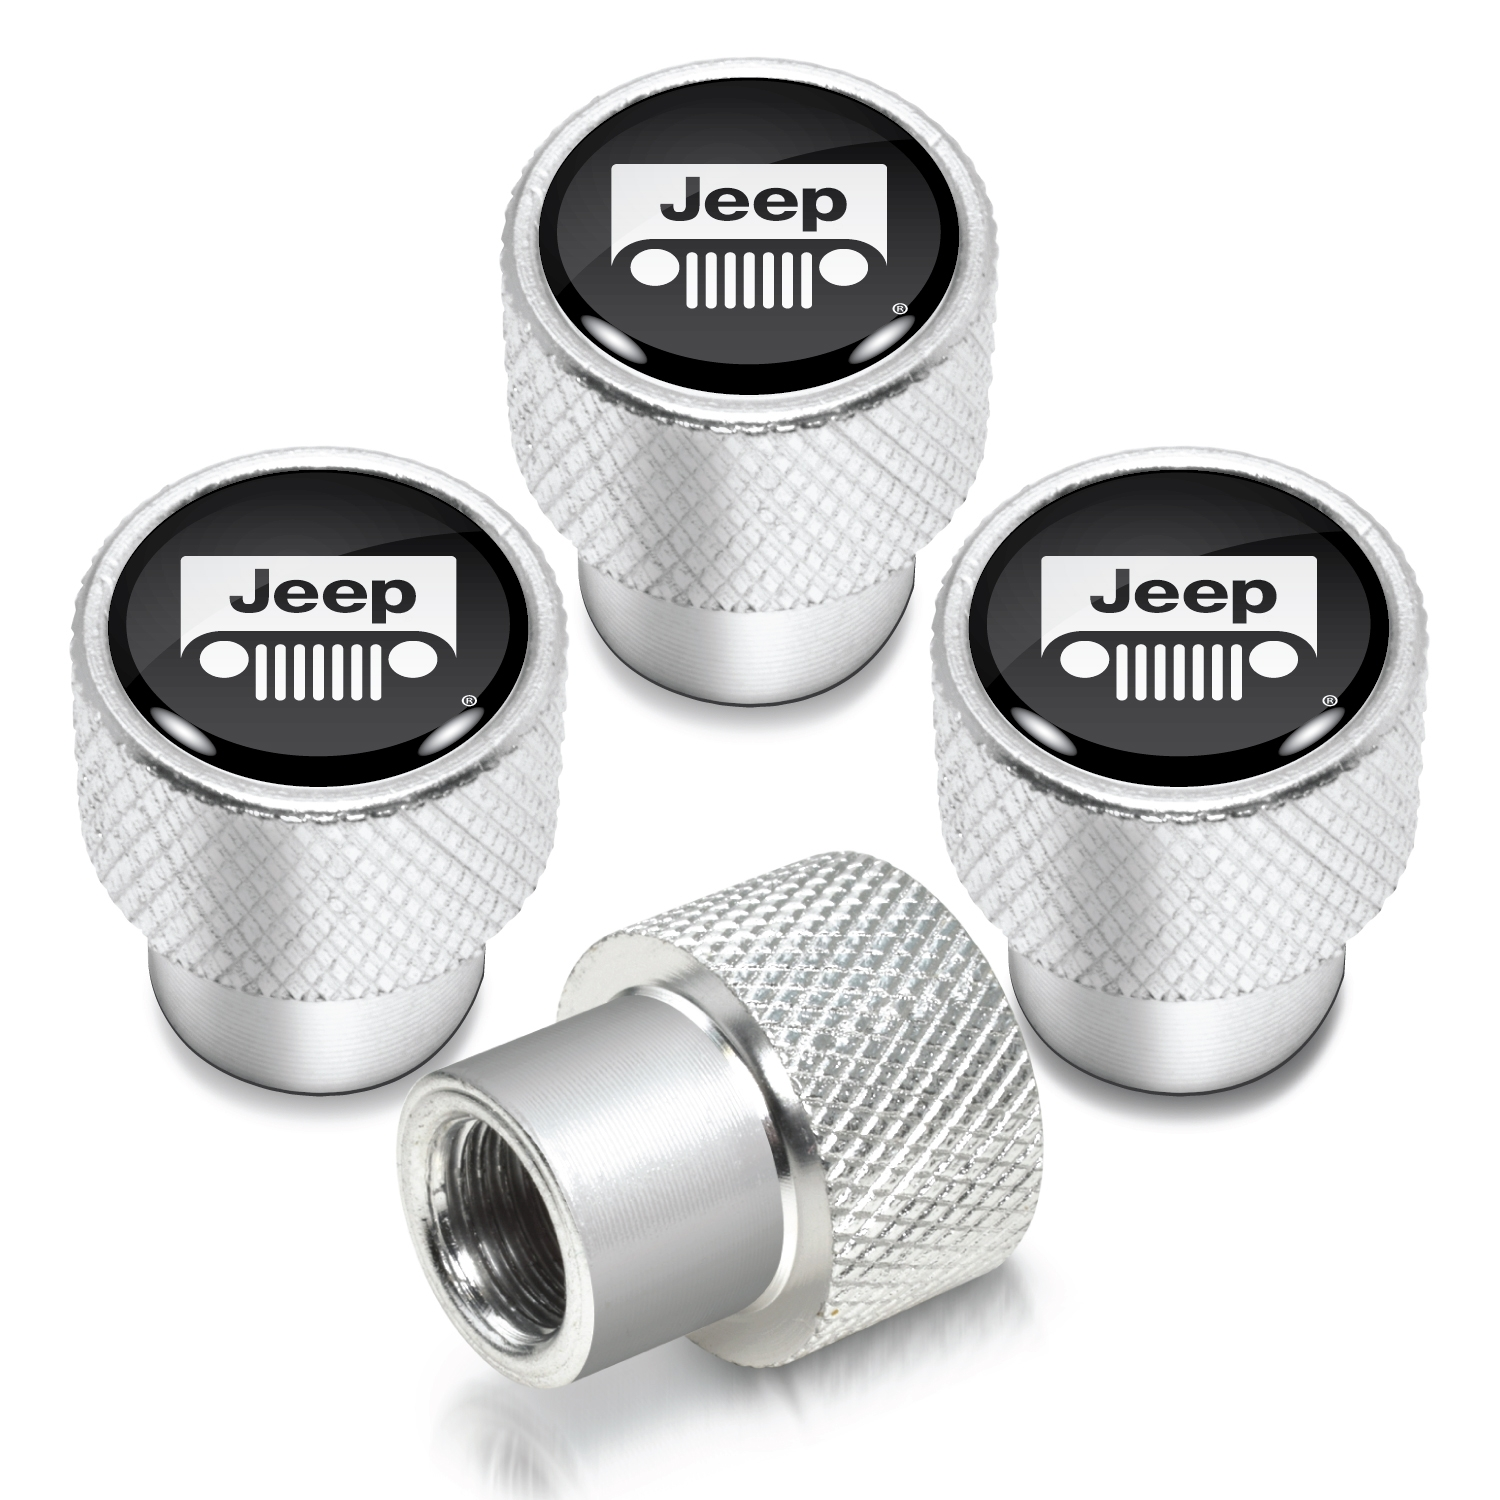 Jeep Grill in Black on Shining Silver Aluminum Tire Valve Stem Caps